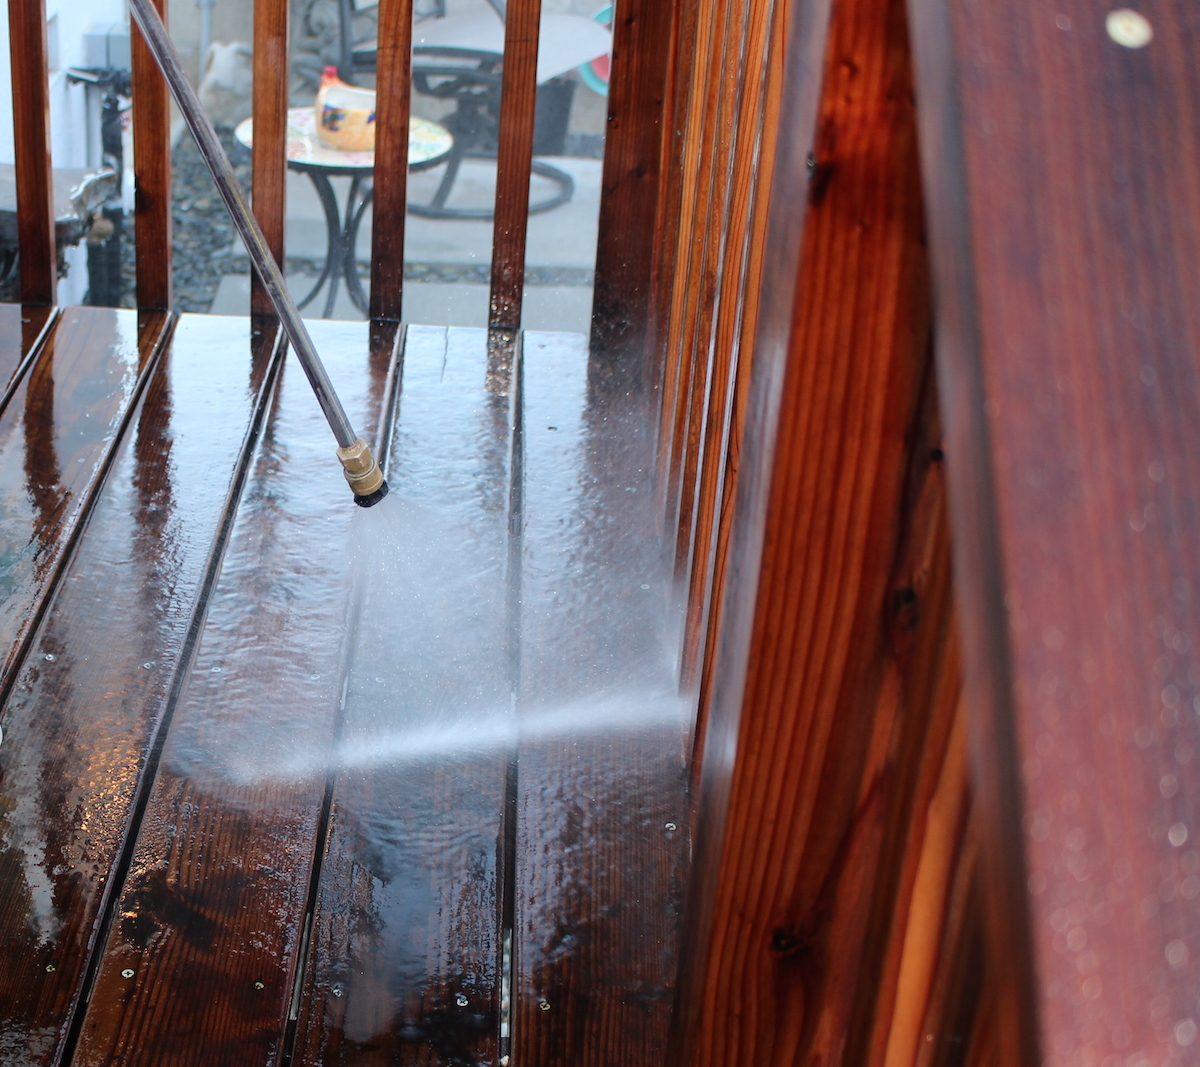 Do You Really Need to Hire a Professional to Pressure Wash Your House?